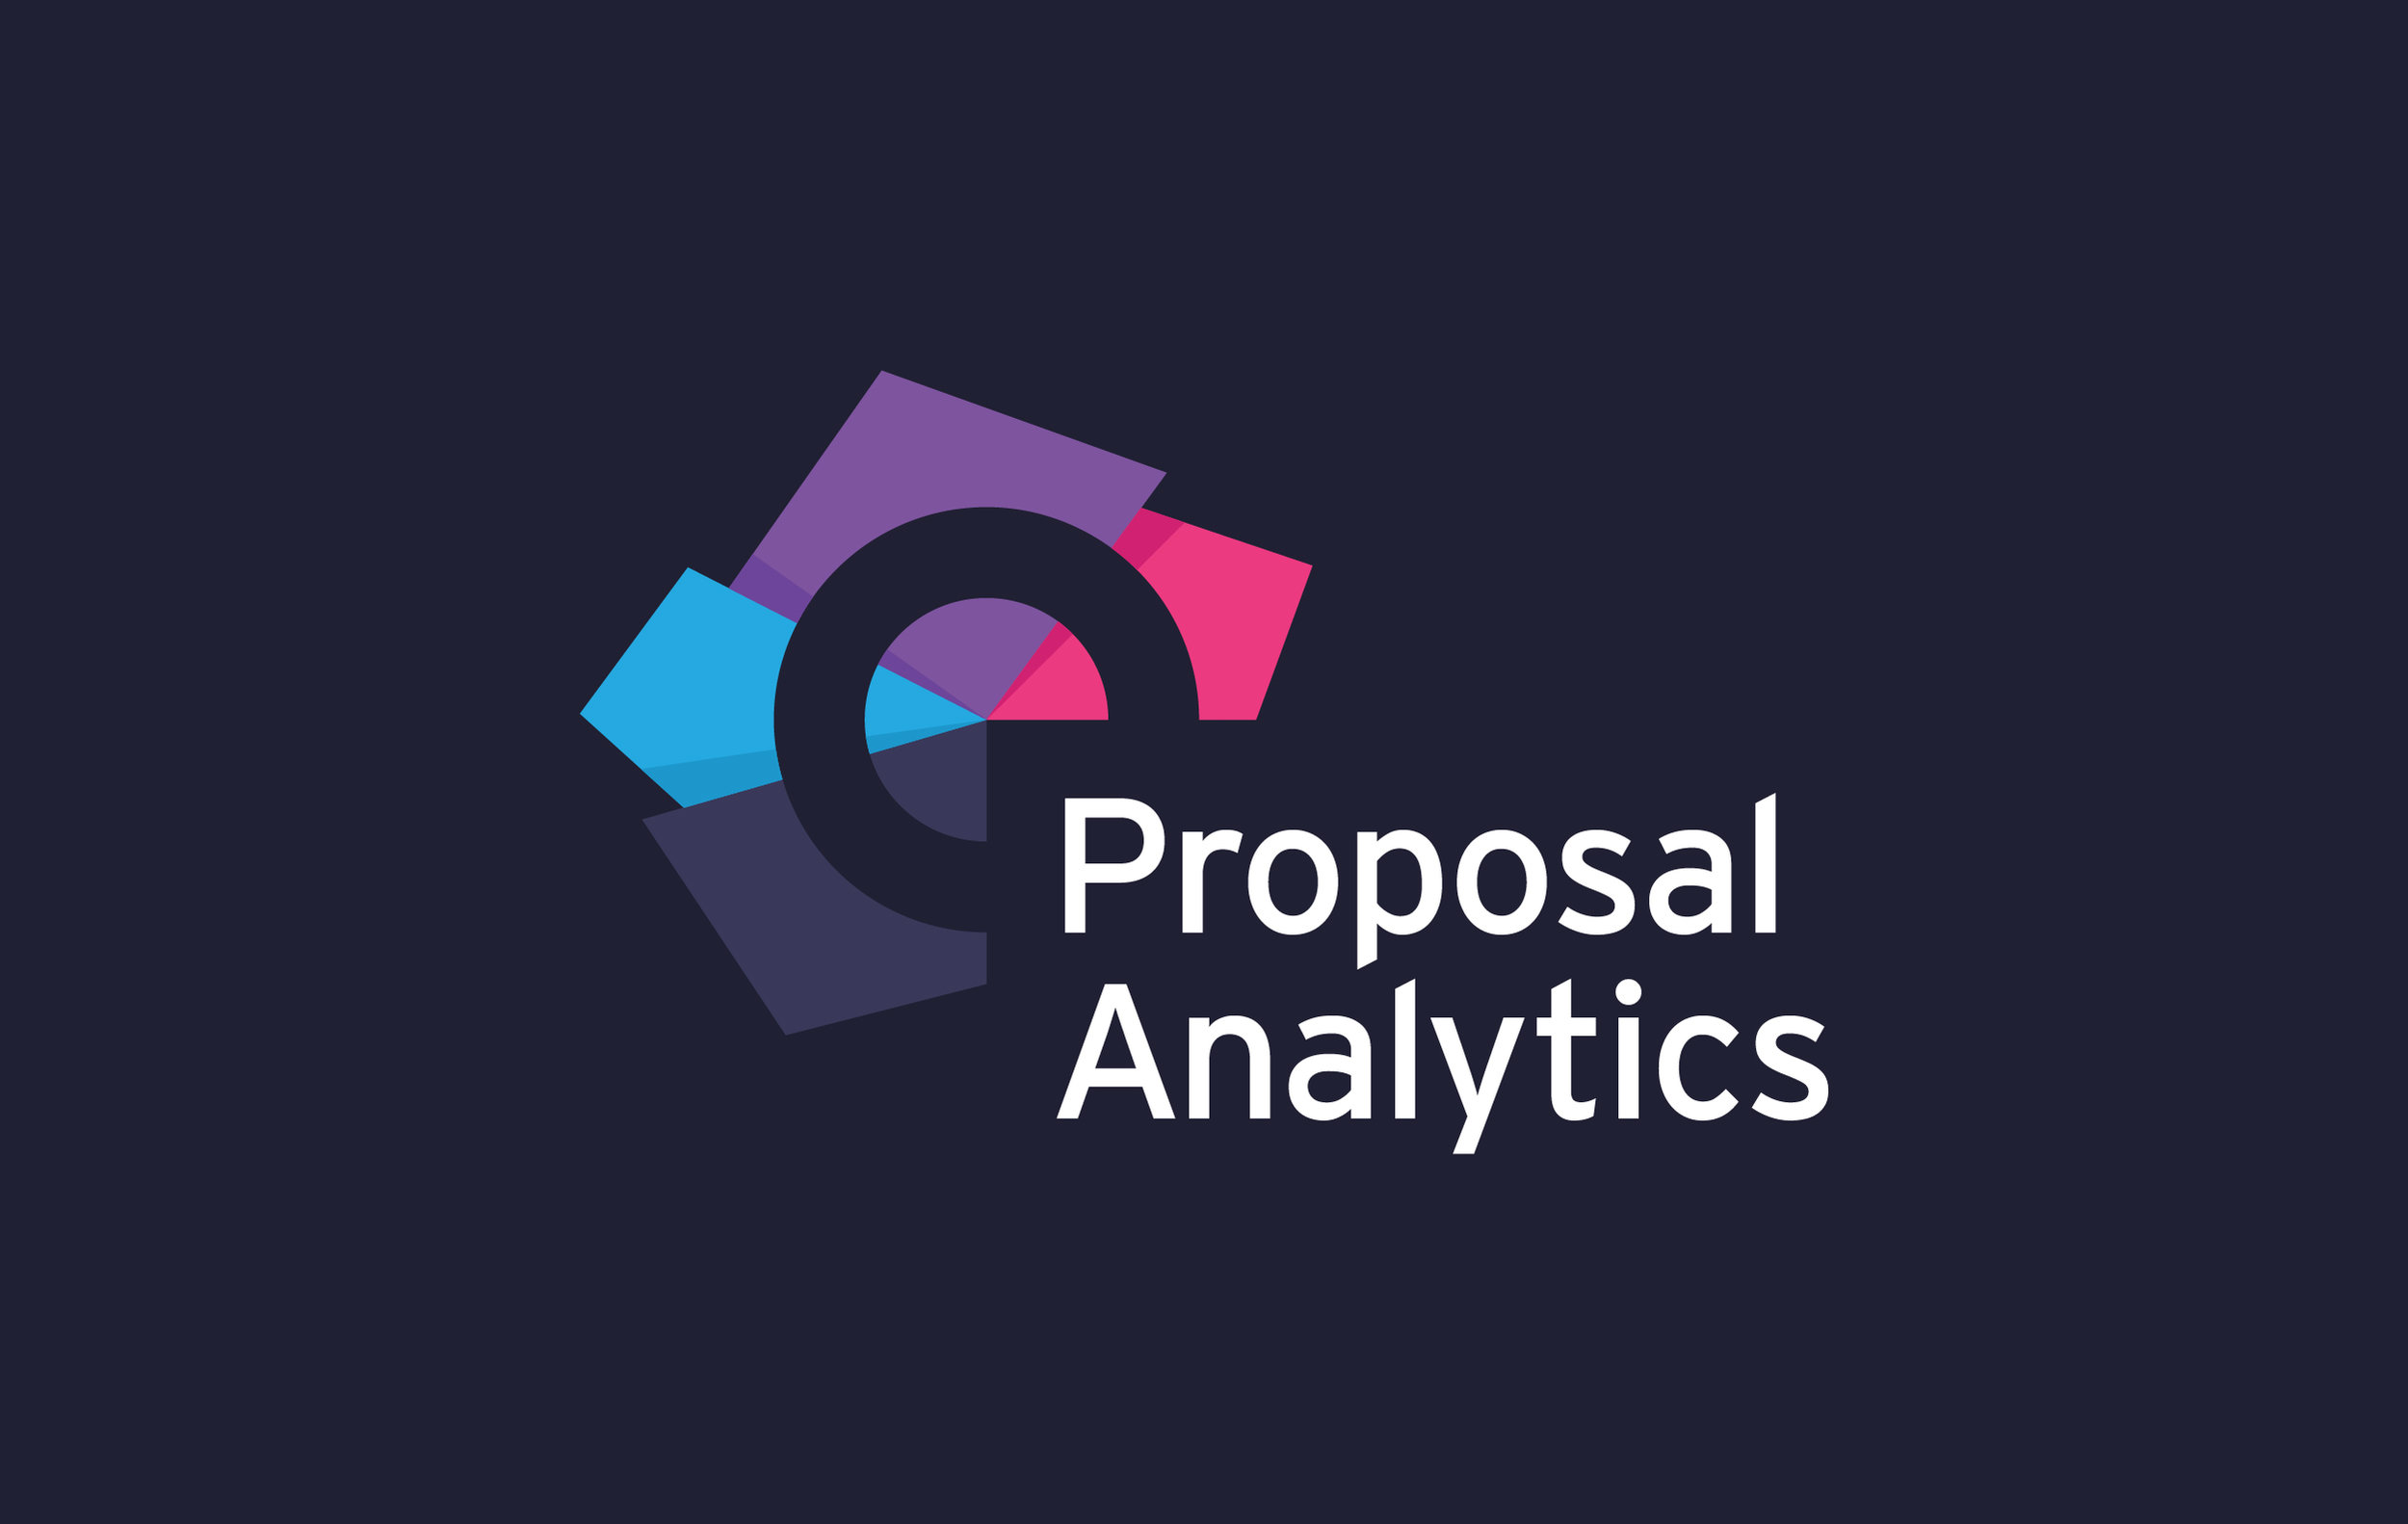 logos_proposal-analytics.jpg